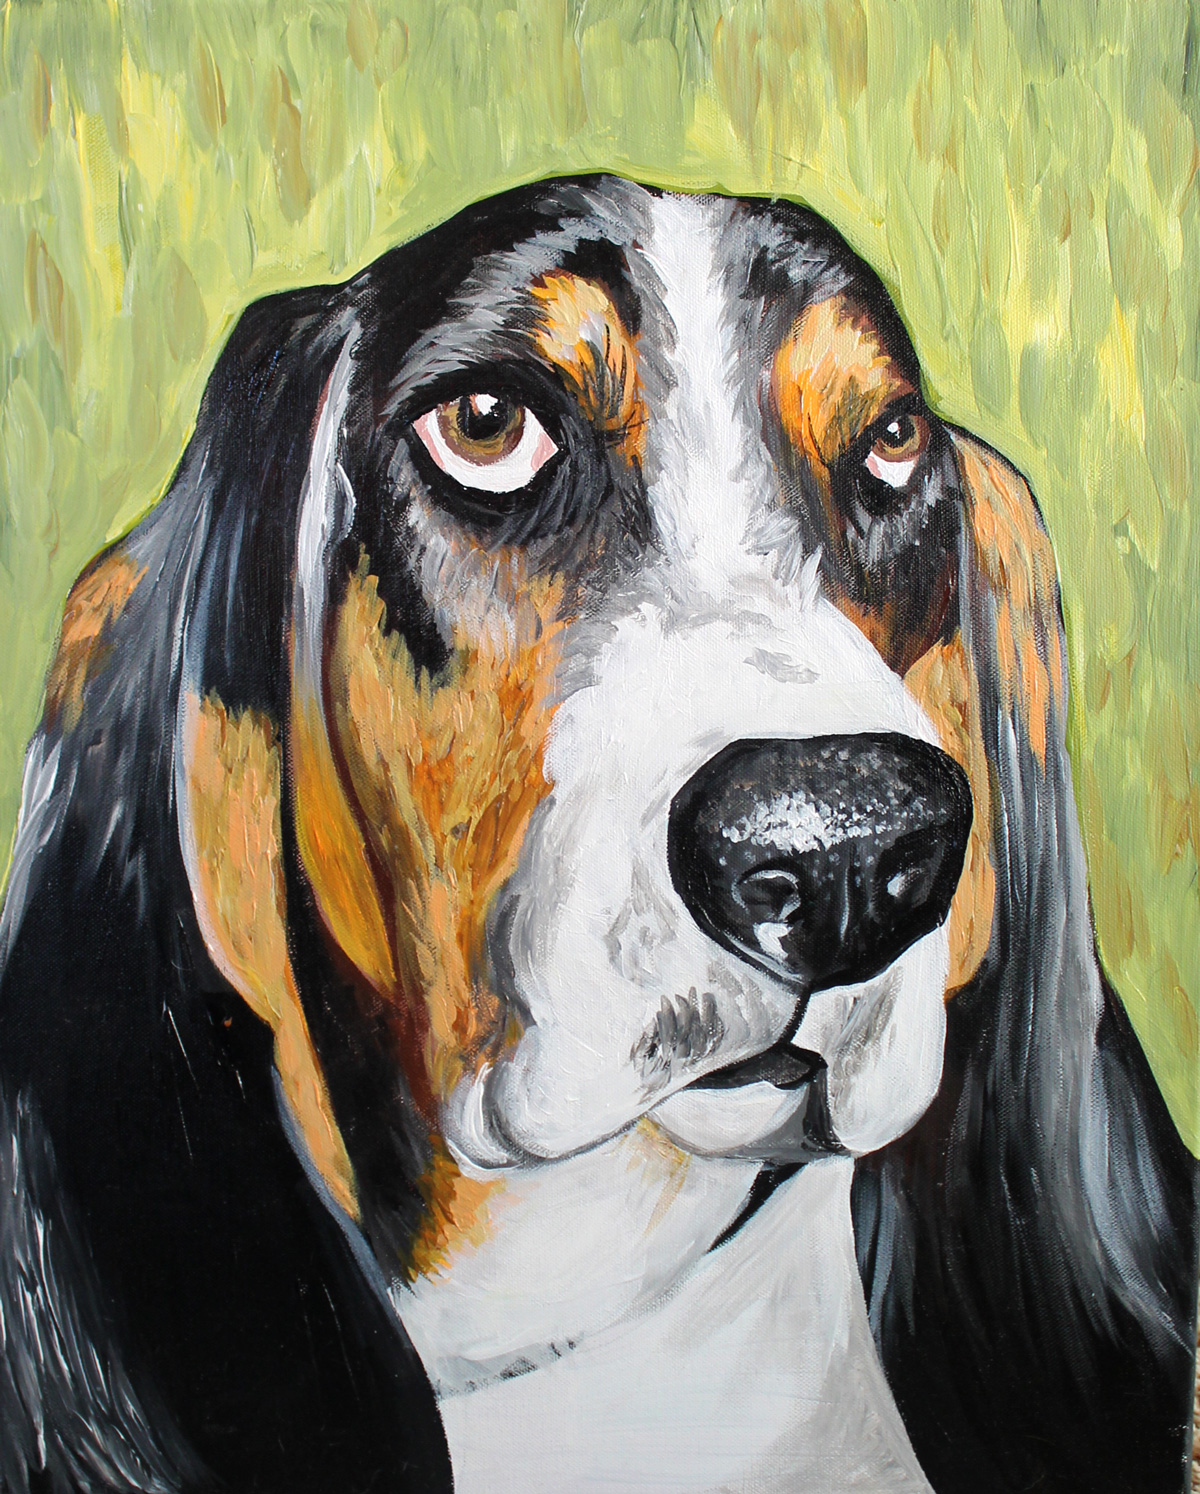 Eddie the Basset Hound painting